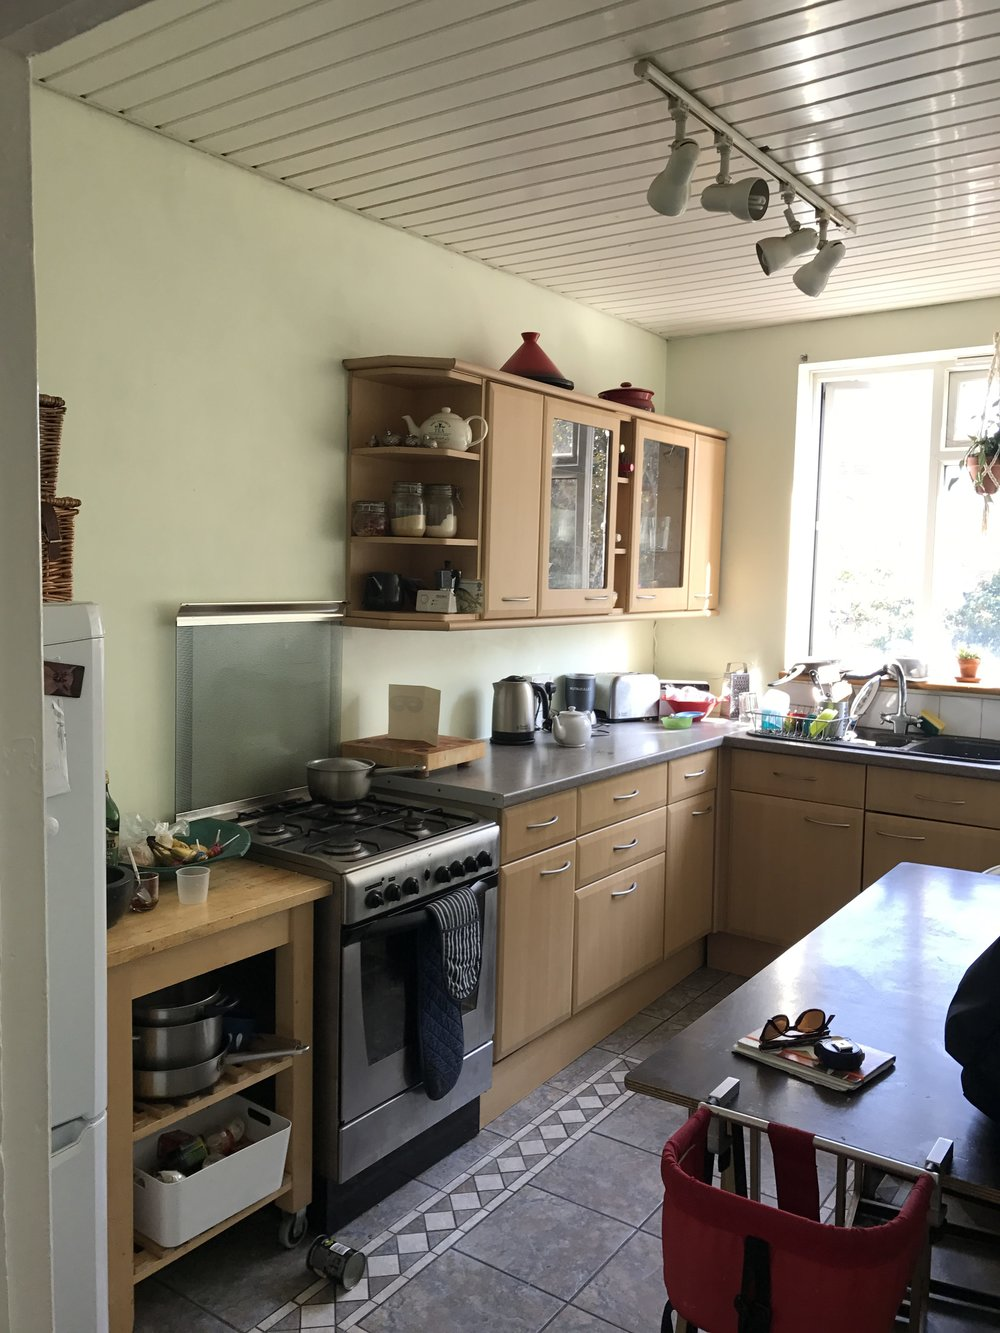 Sarah and Peter's Clapton kitchen before Lozi's renovations